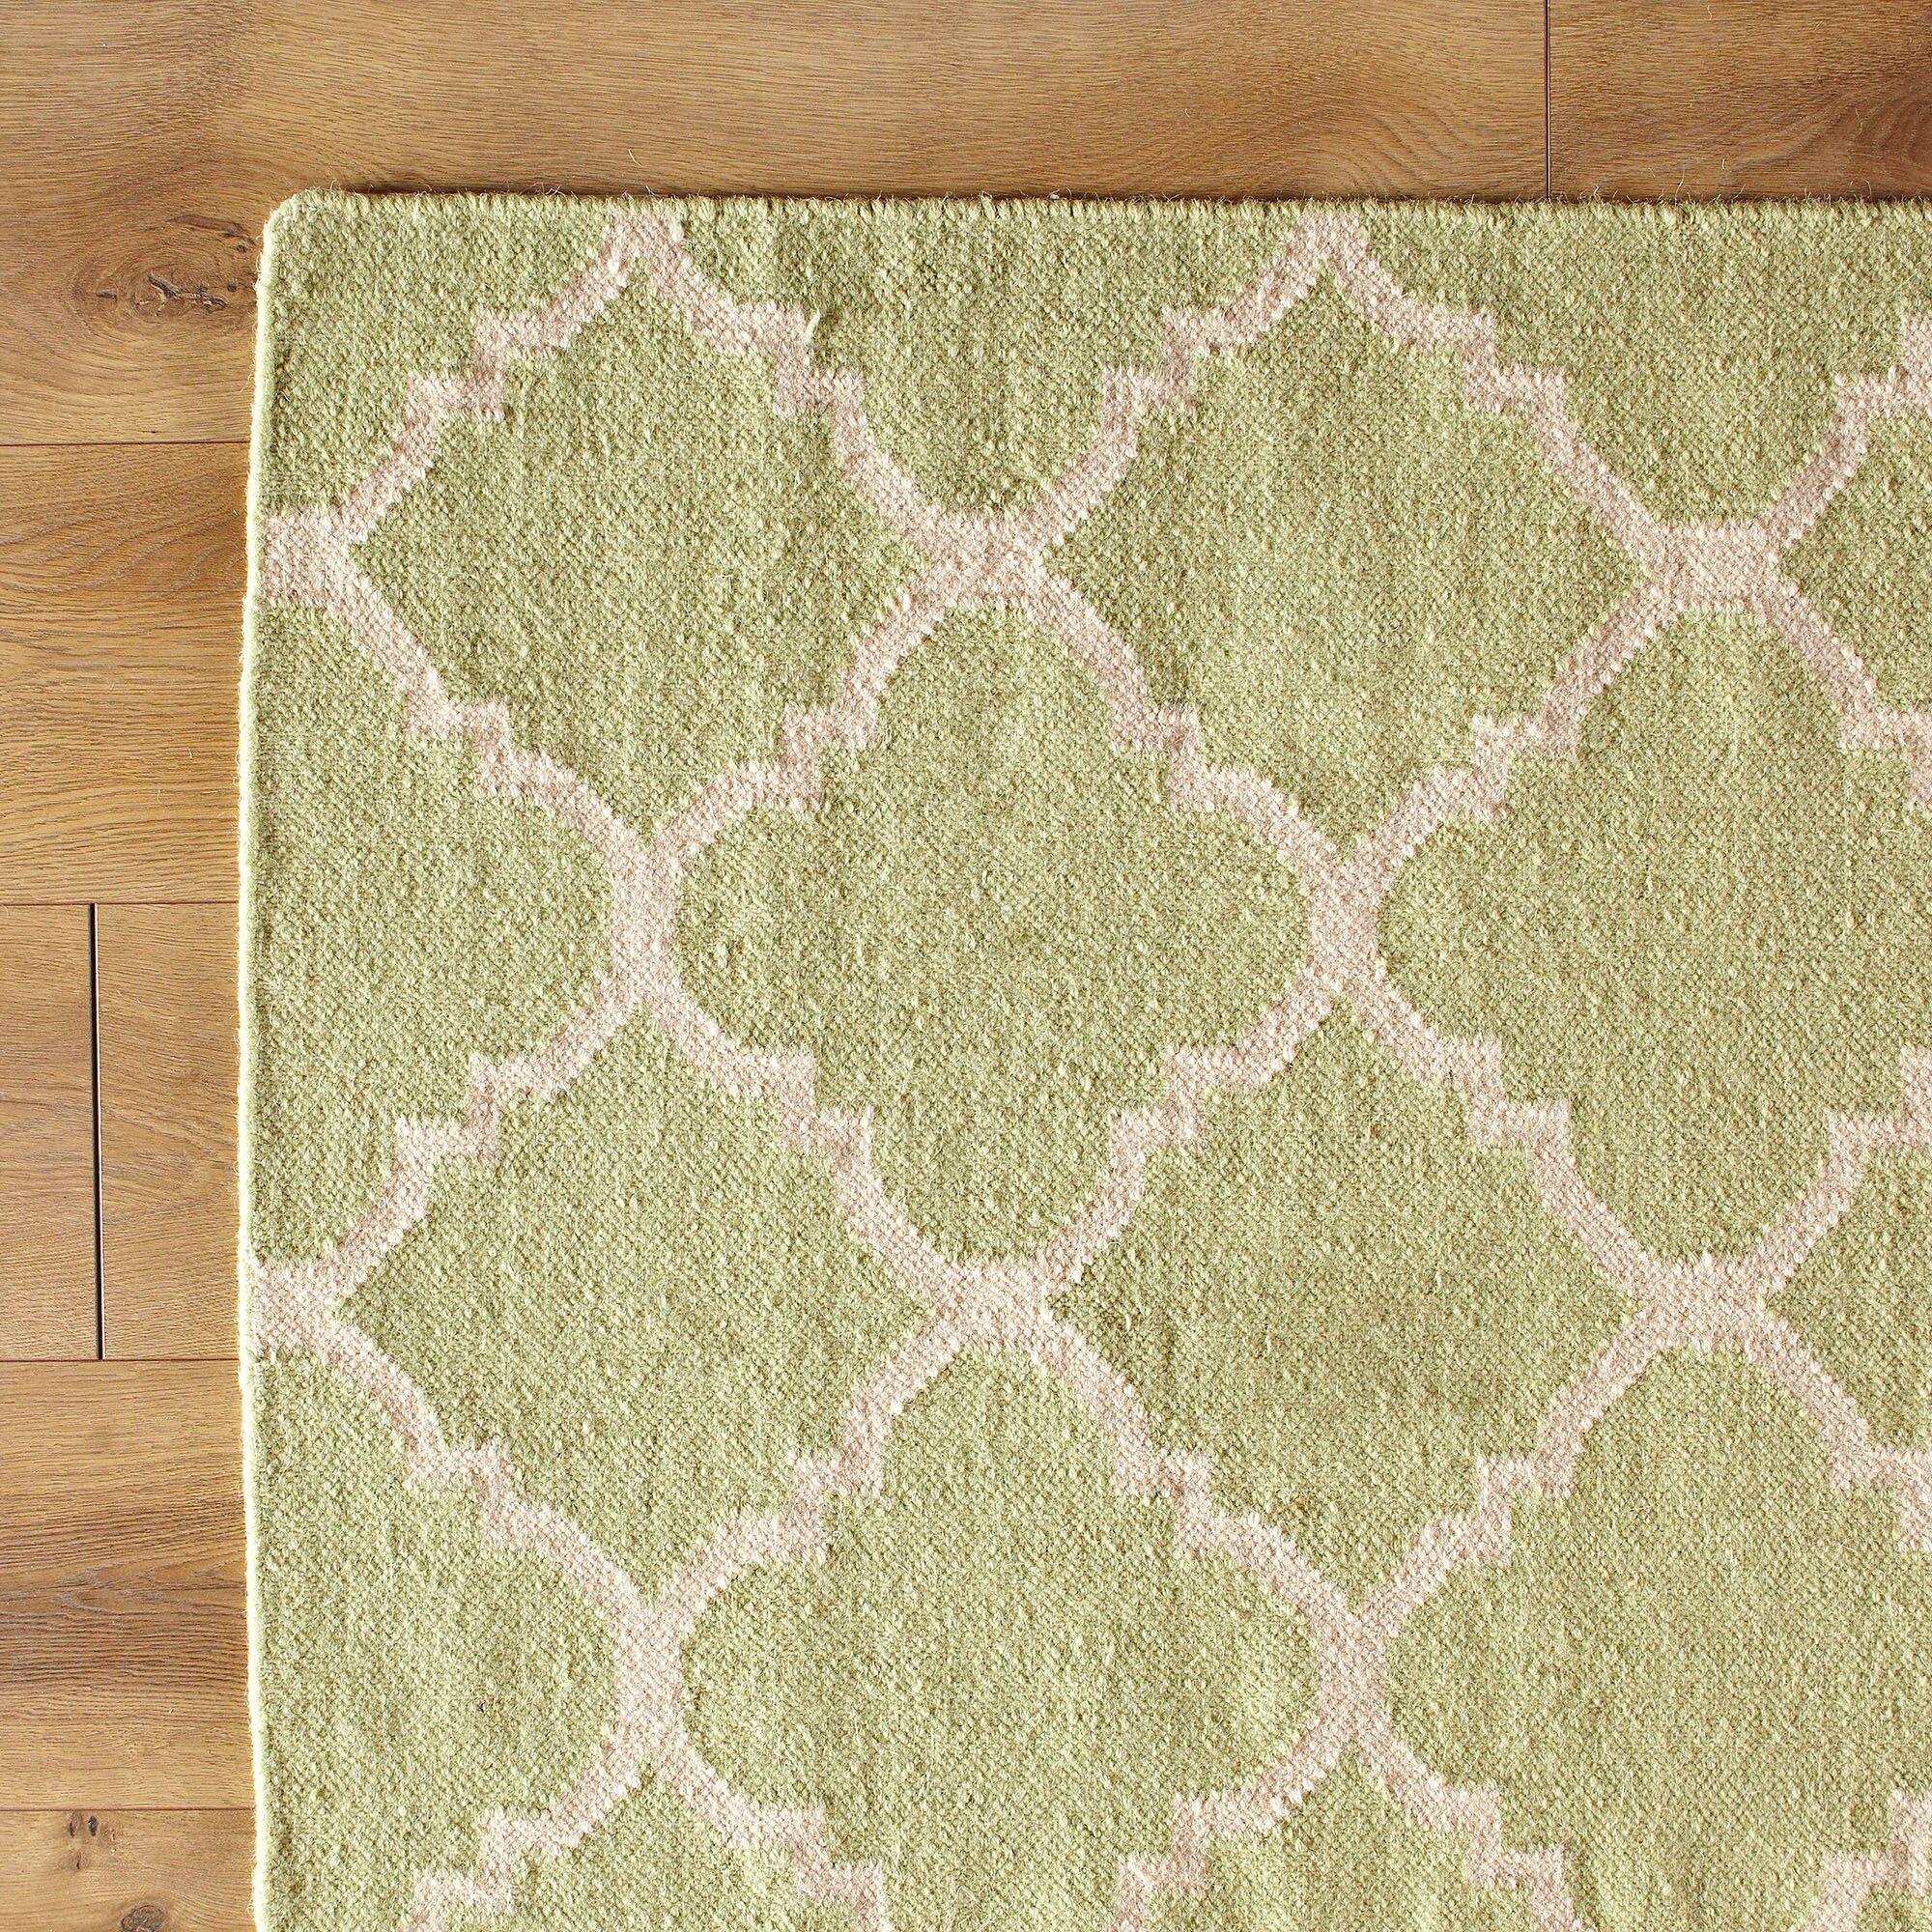 Checked Area Rugs: Birch Lane Kids Green/Ivory Checked Area Rug & Reviews